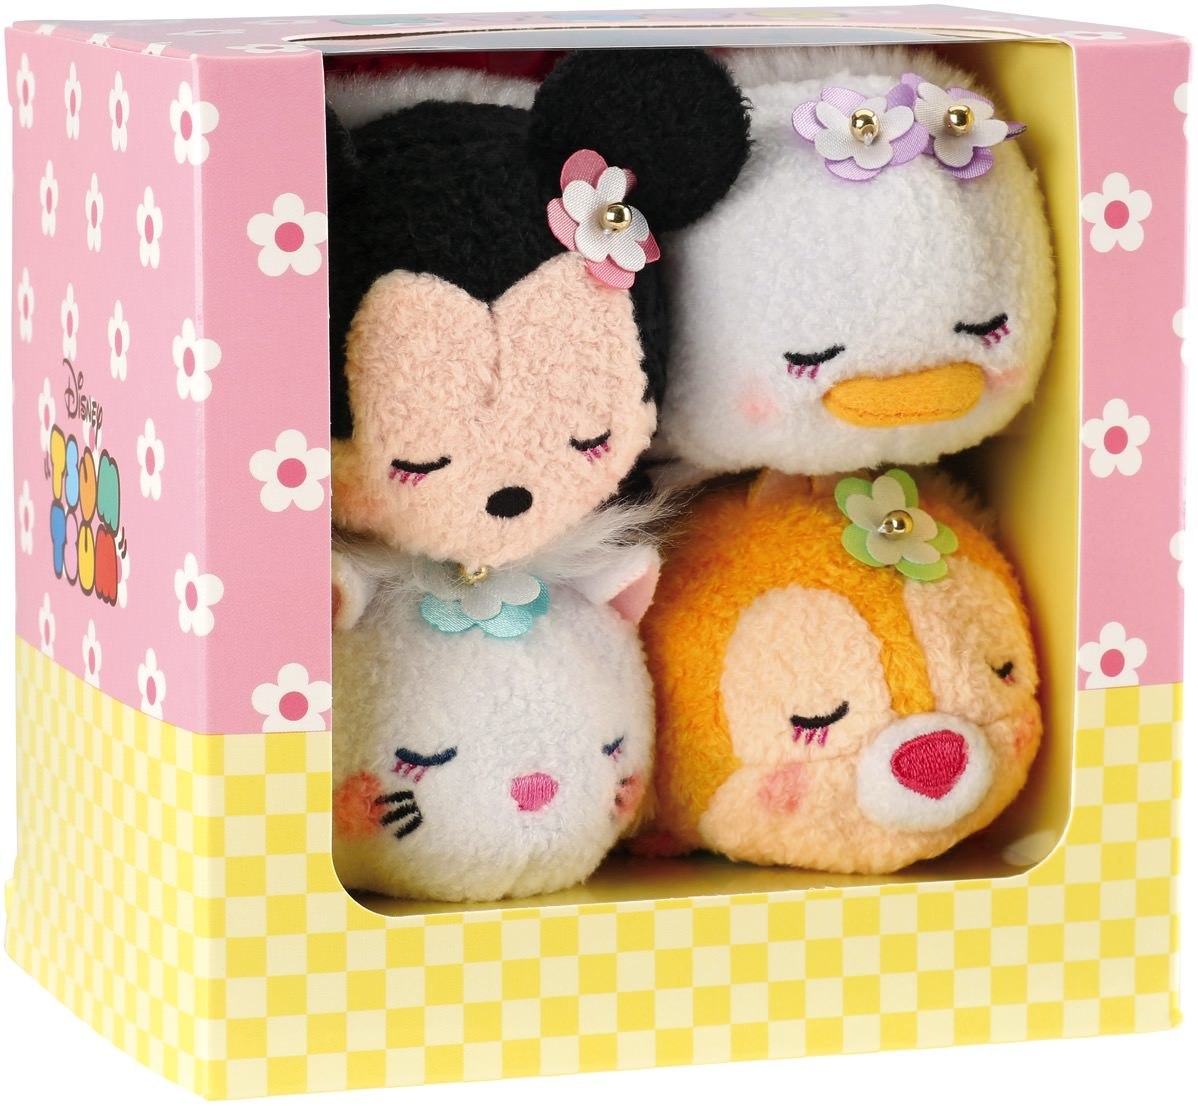 TSUM TSUM 京都限定セット